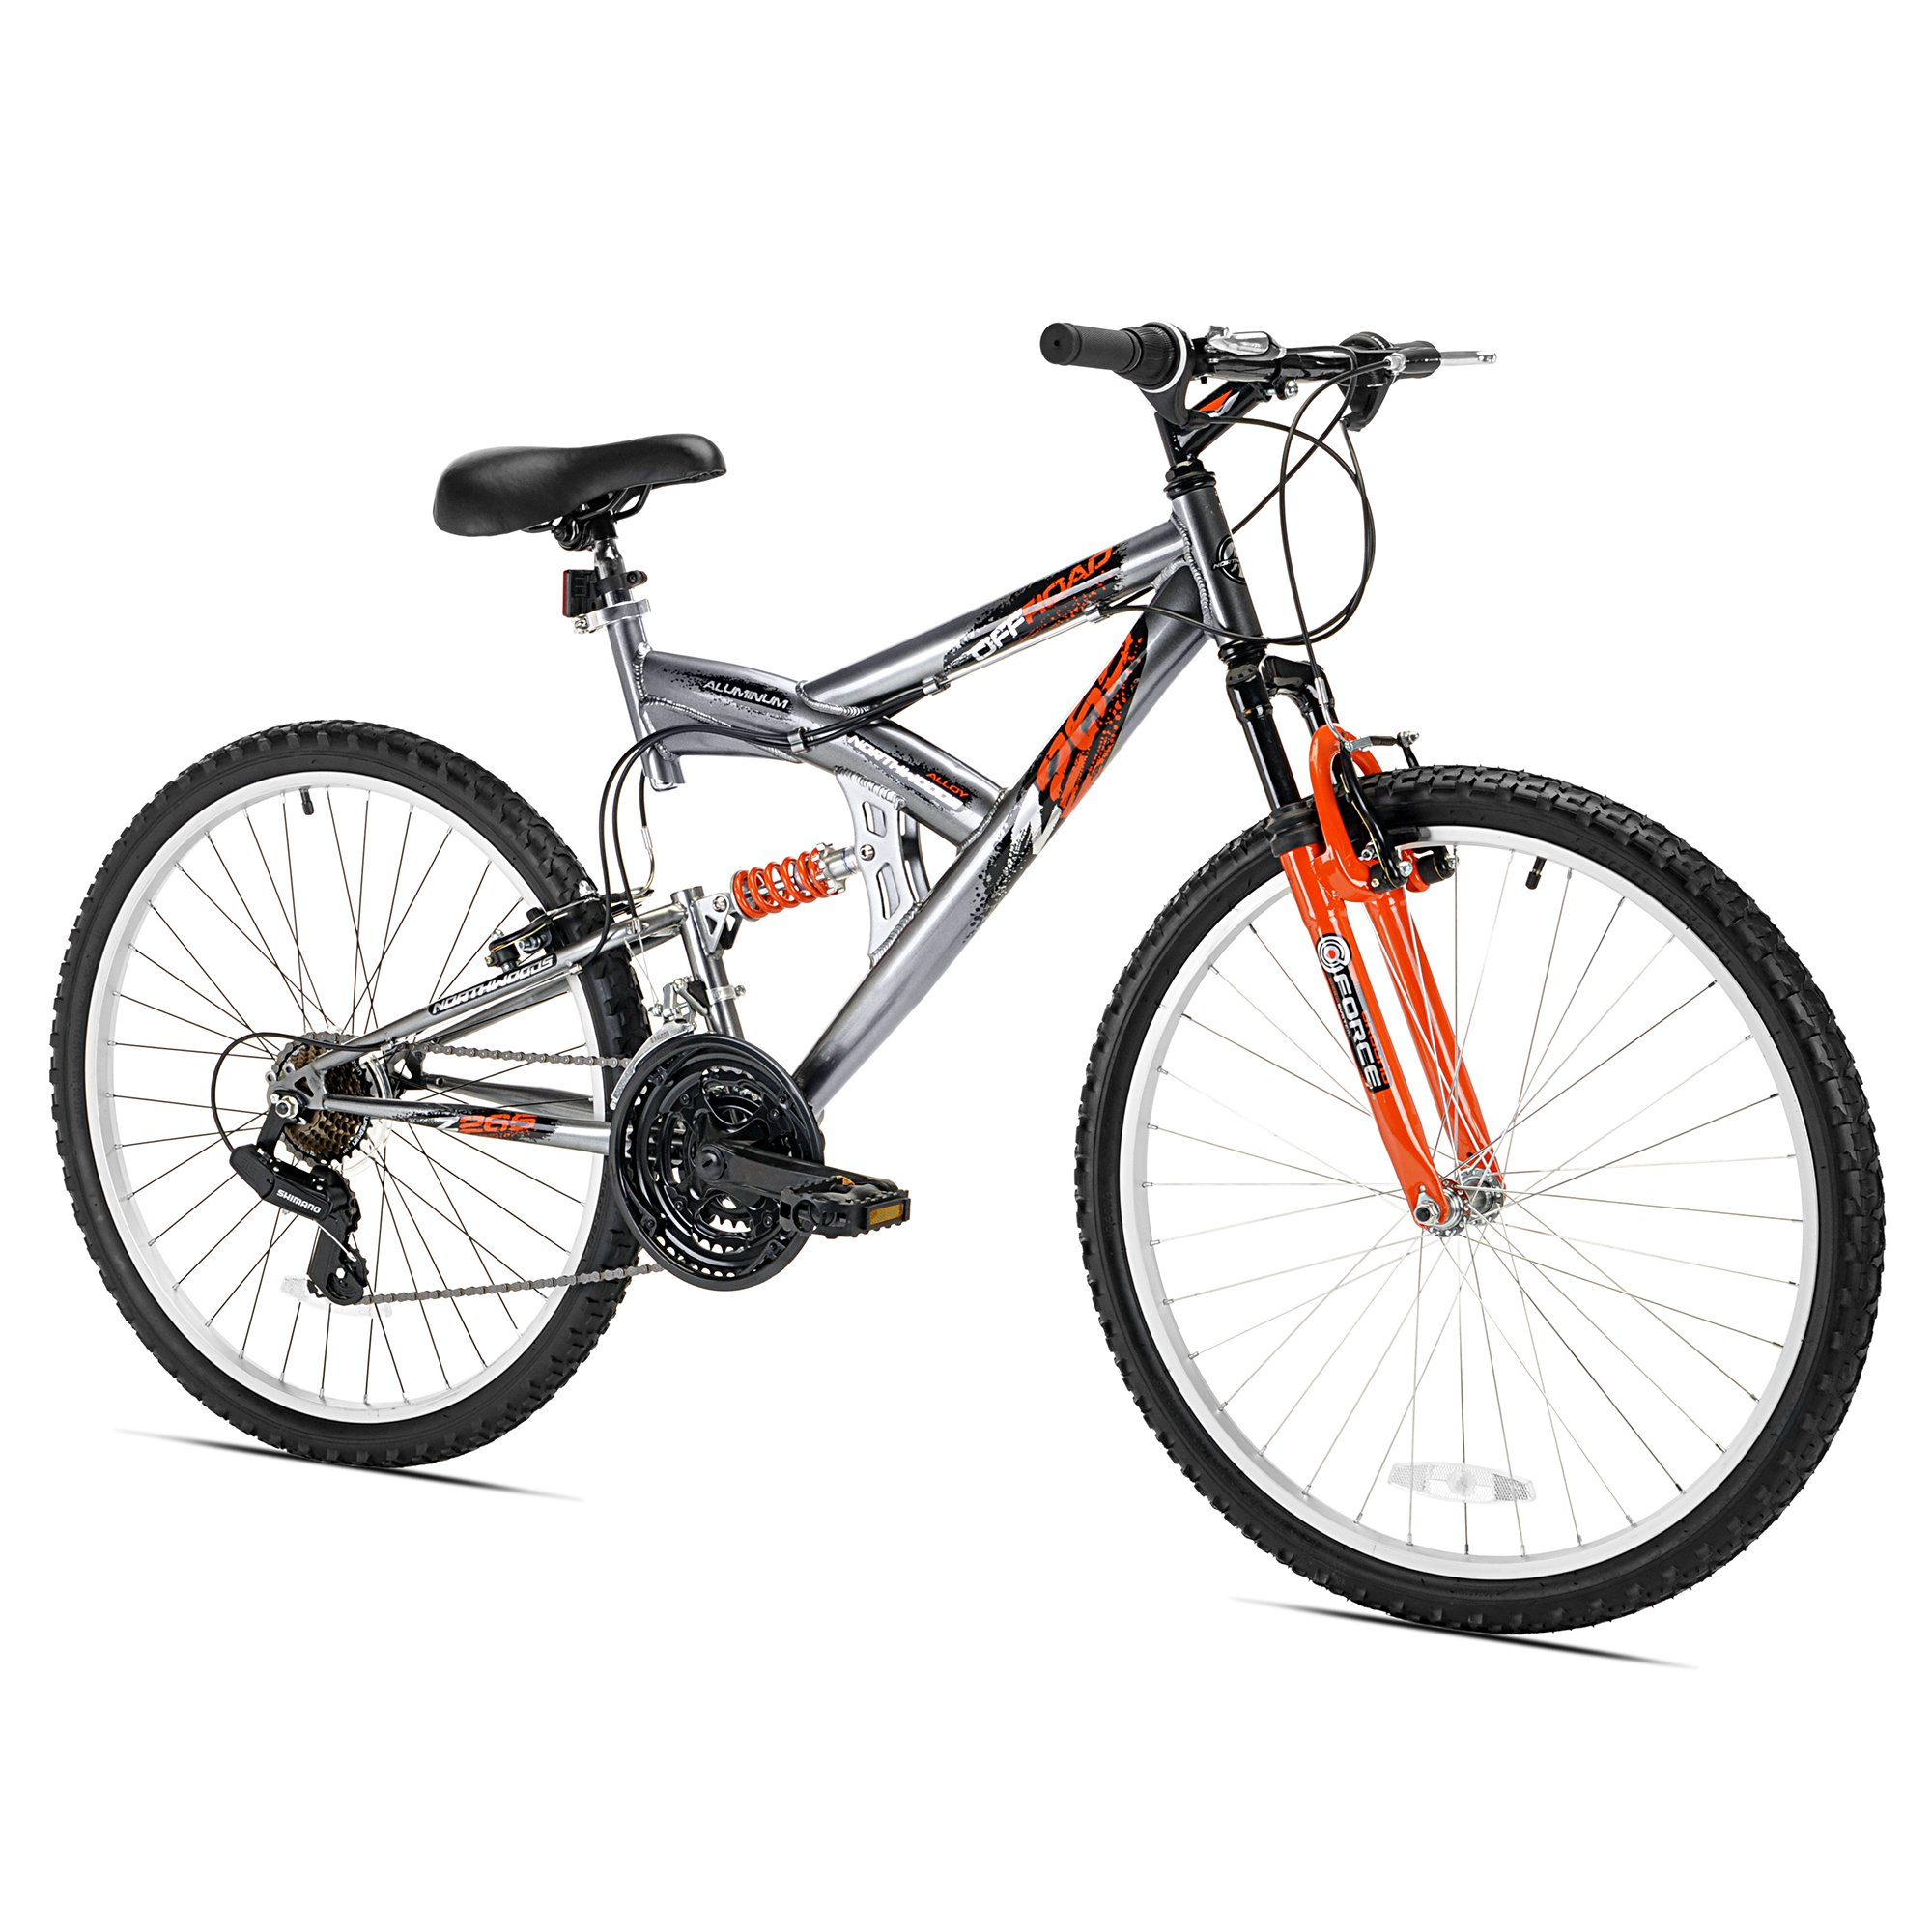 "Northwoods Z265 26"" Men's Dual Suspension 21 Speed Lightweight Mountain Bike"